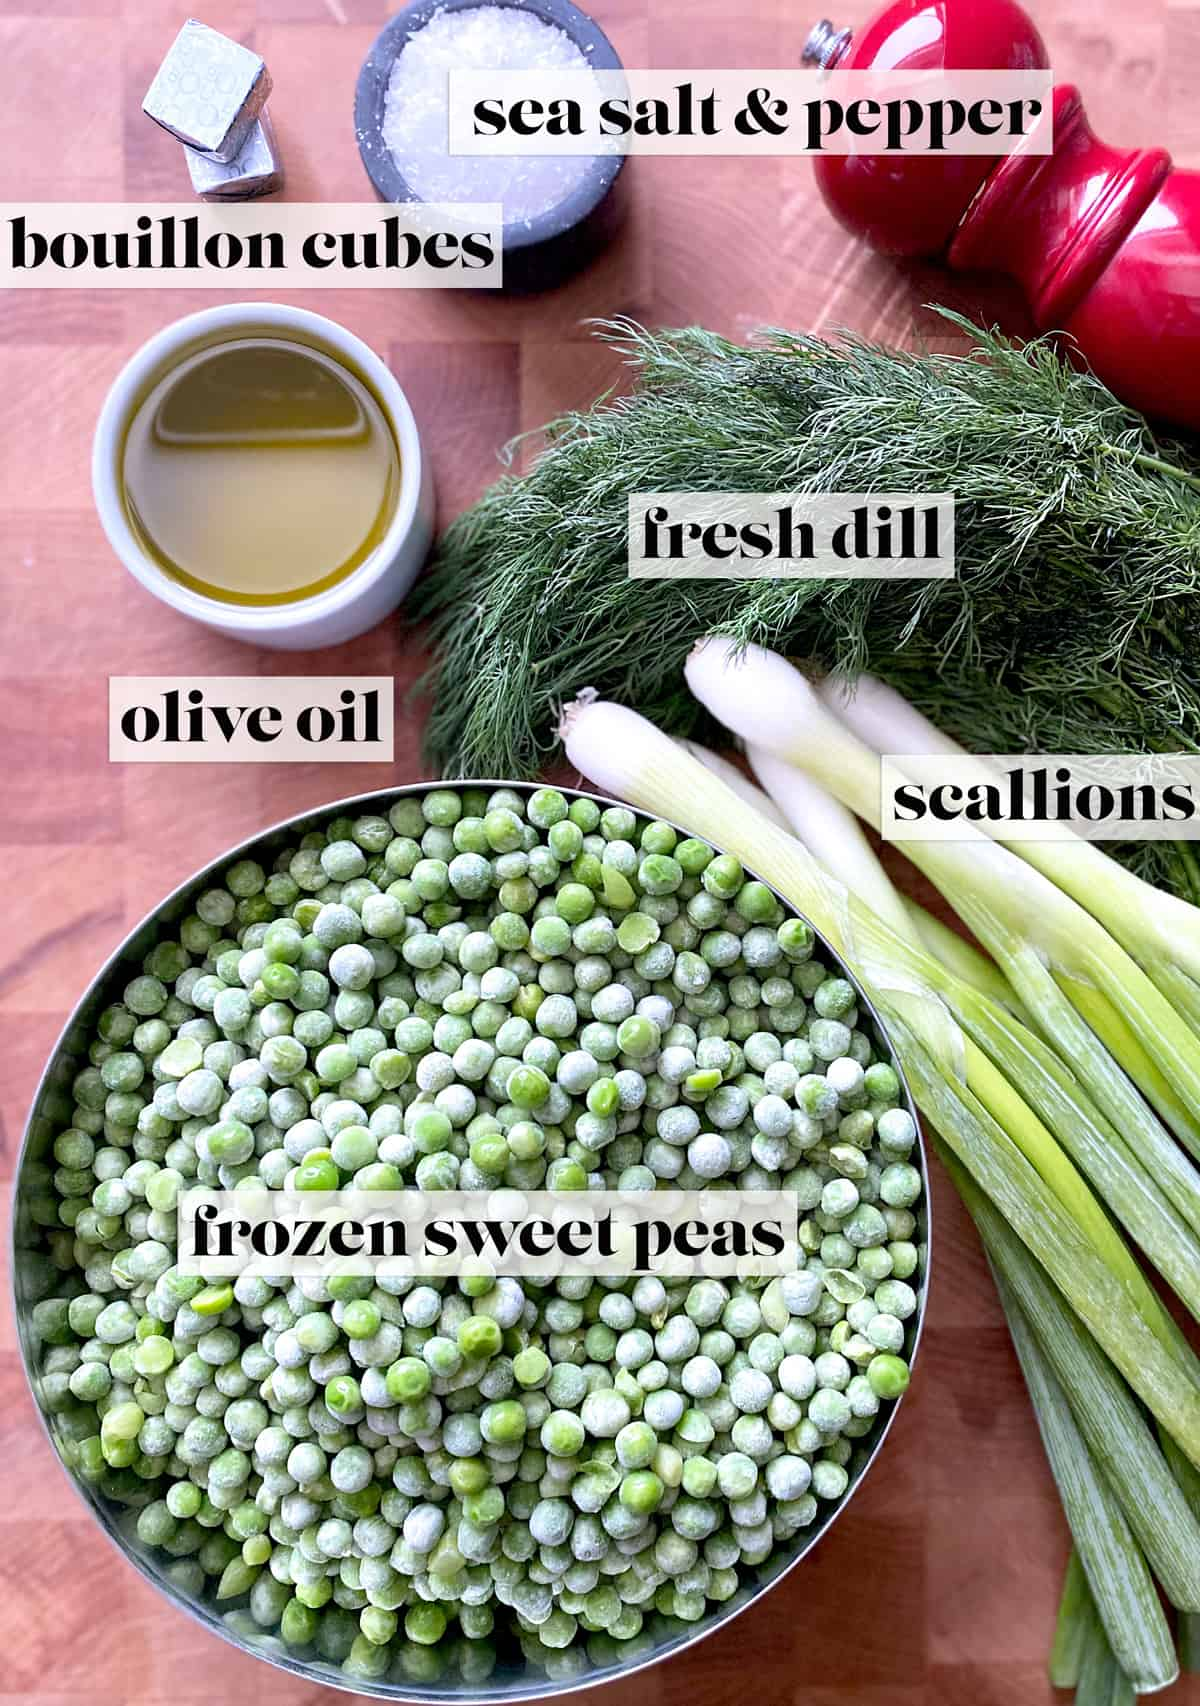 On aa butcher block, two bouillon cubes, a small bowl with sea salt, a red pepper mill, a small container with olive oil, a bunch of fresh dill, five fresh scallions and a large bowl with frozen peas.